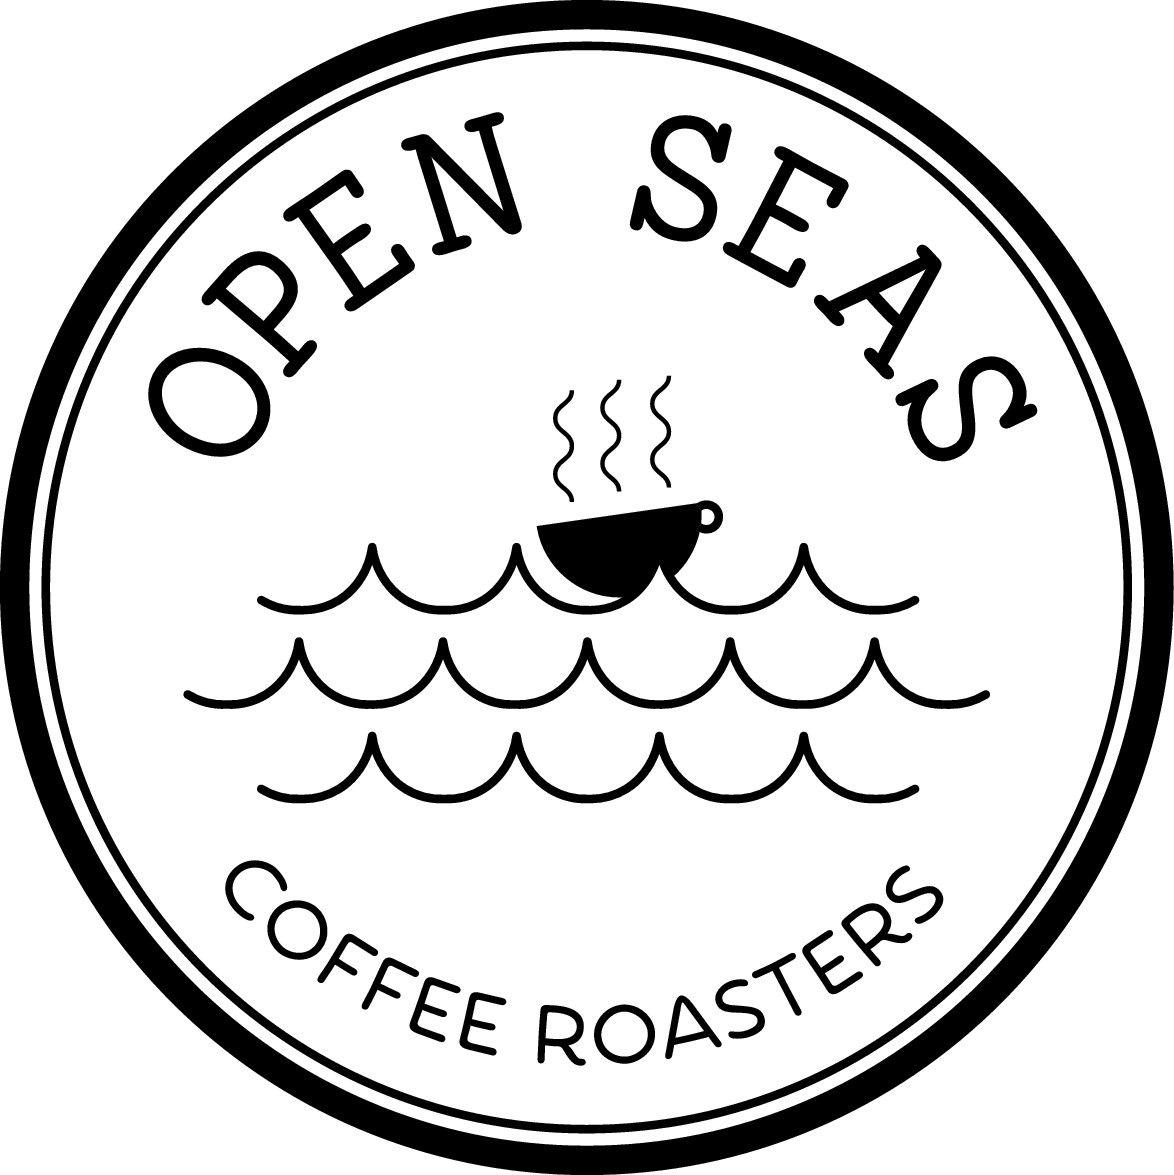 Specialty Coffee Roaster looking for logo and website for this new company.